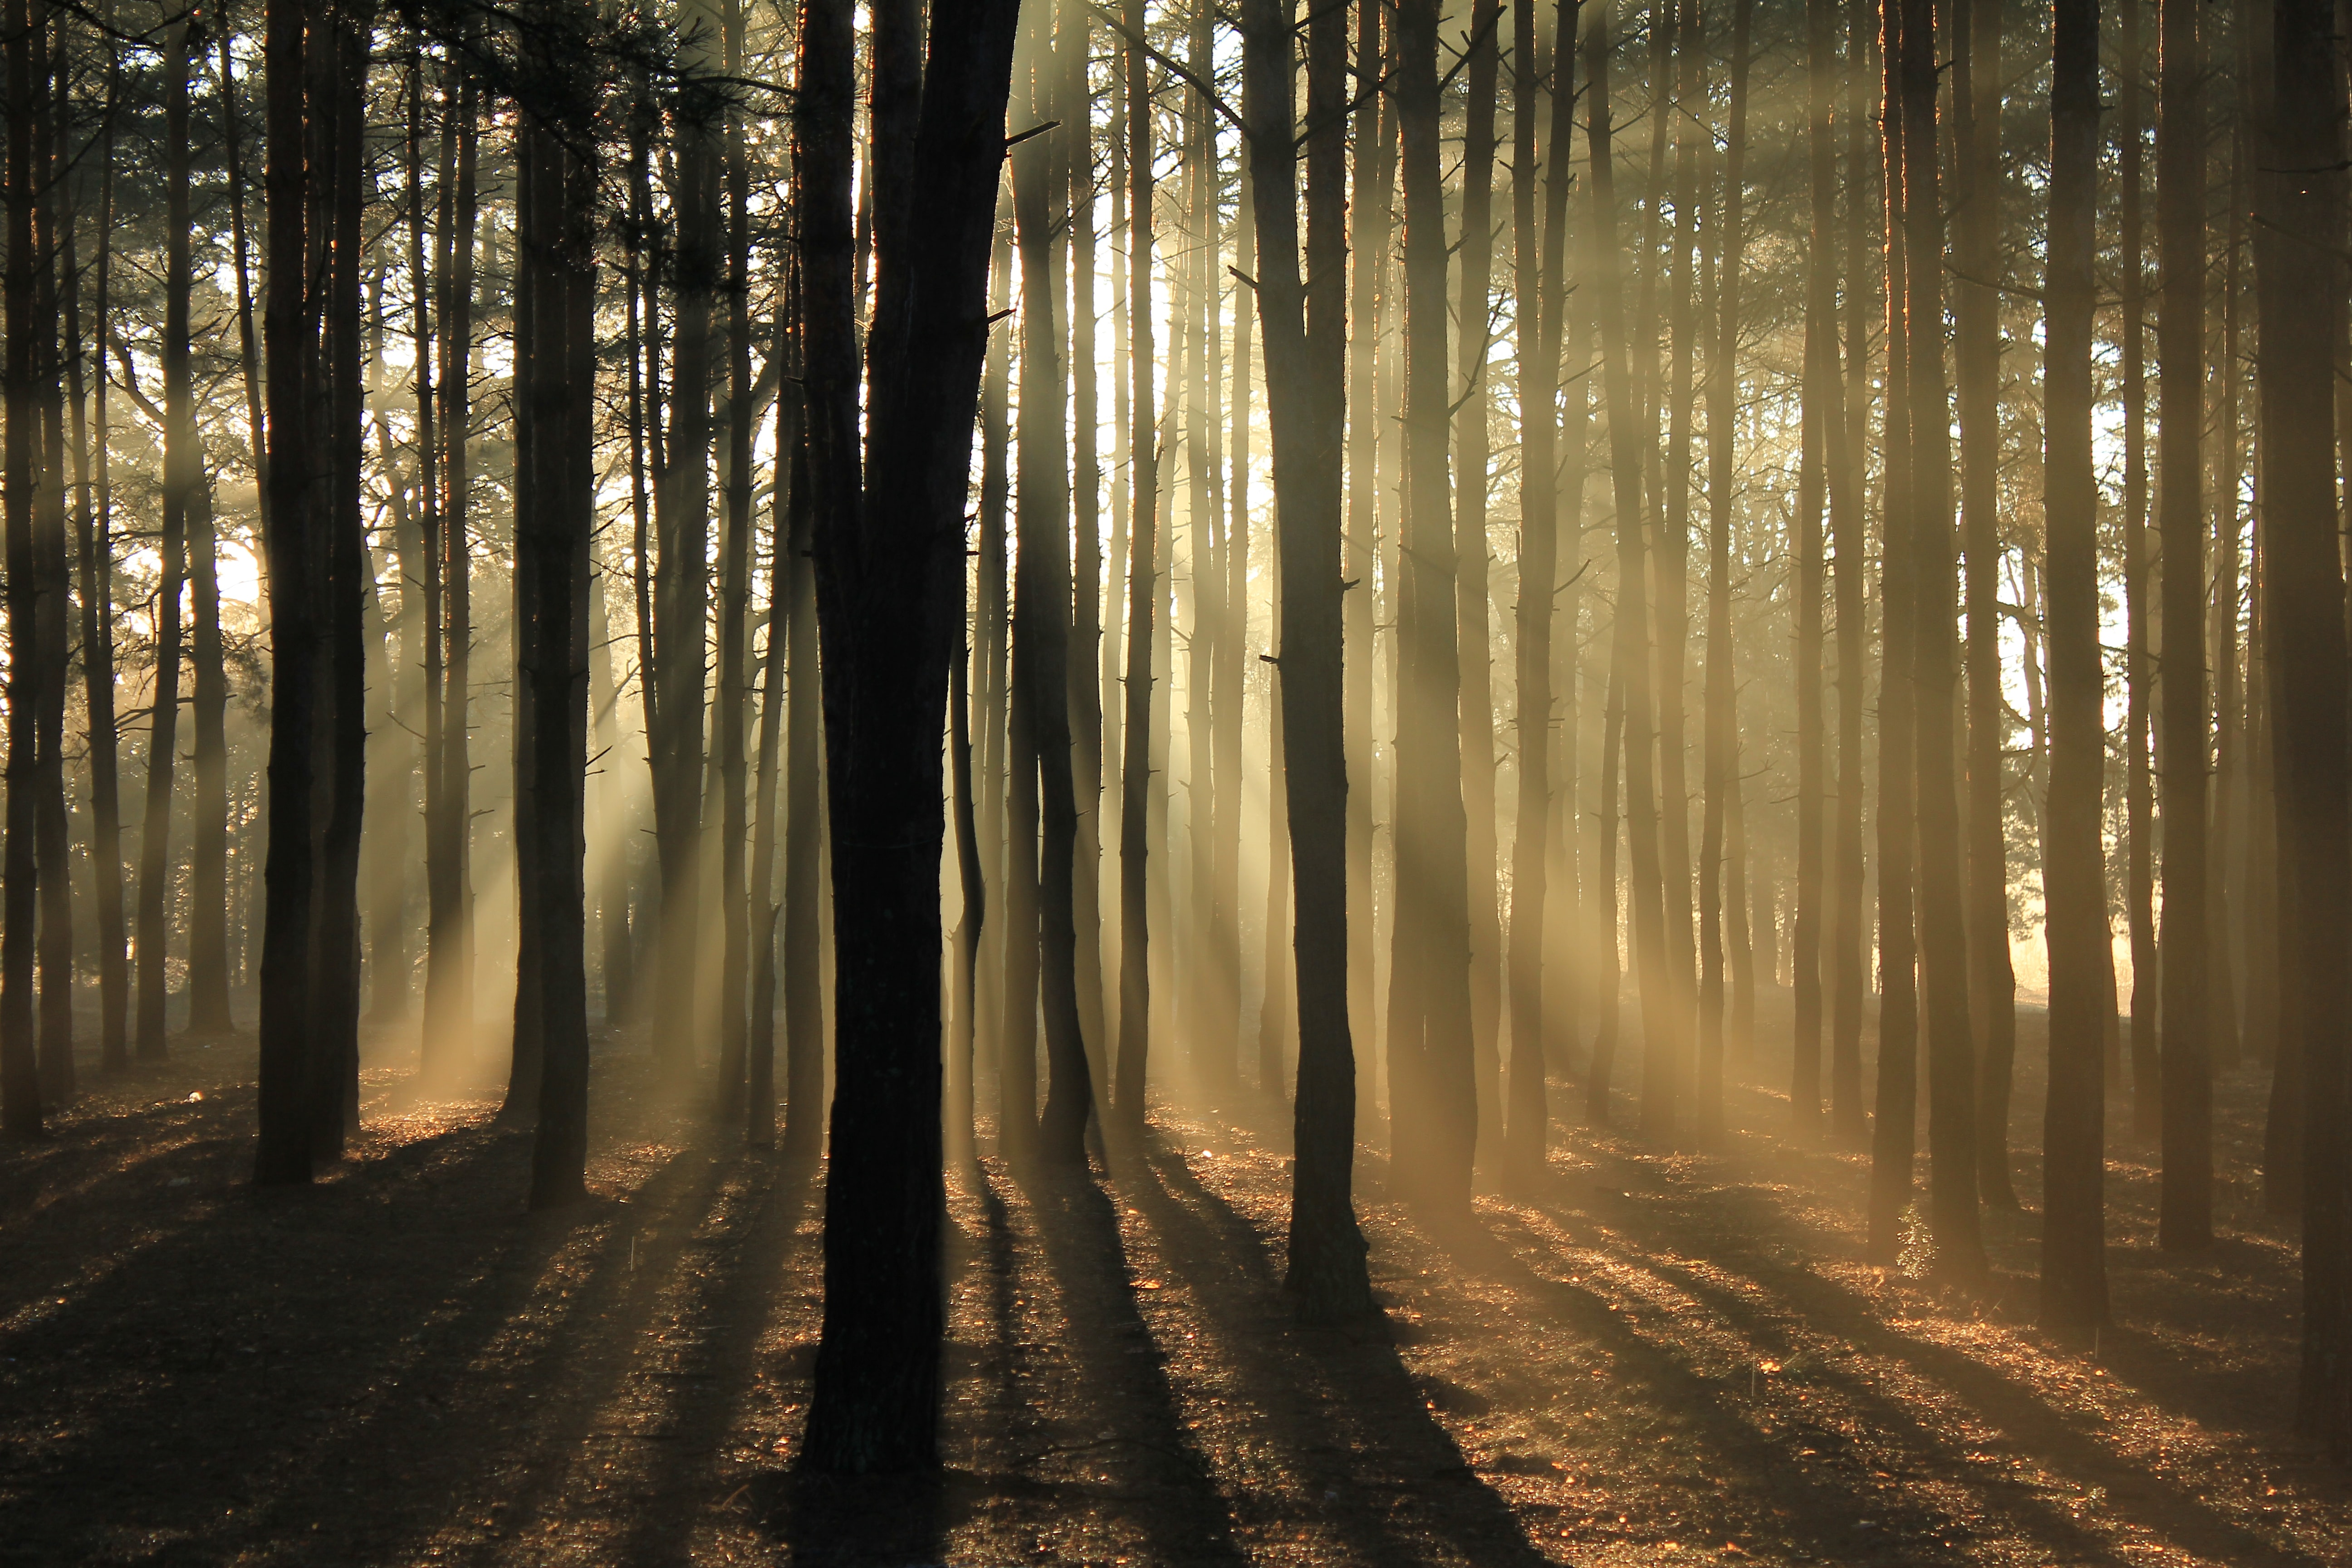 silhouette of trees surrounded with fogs